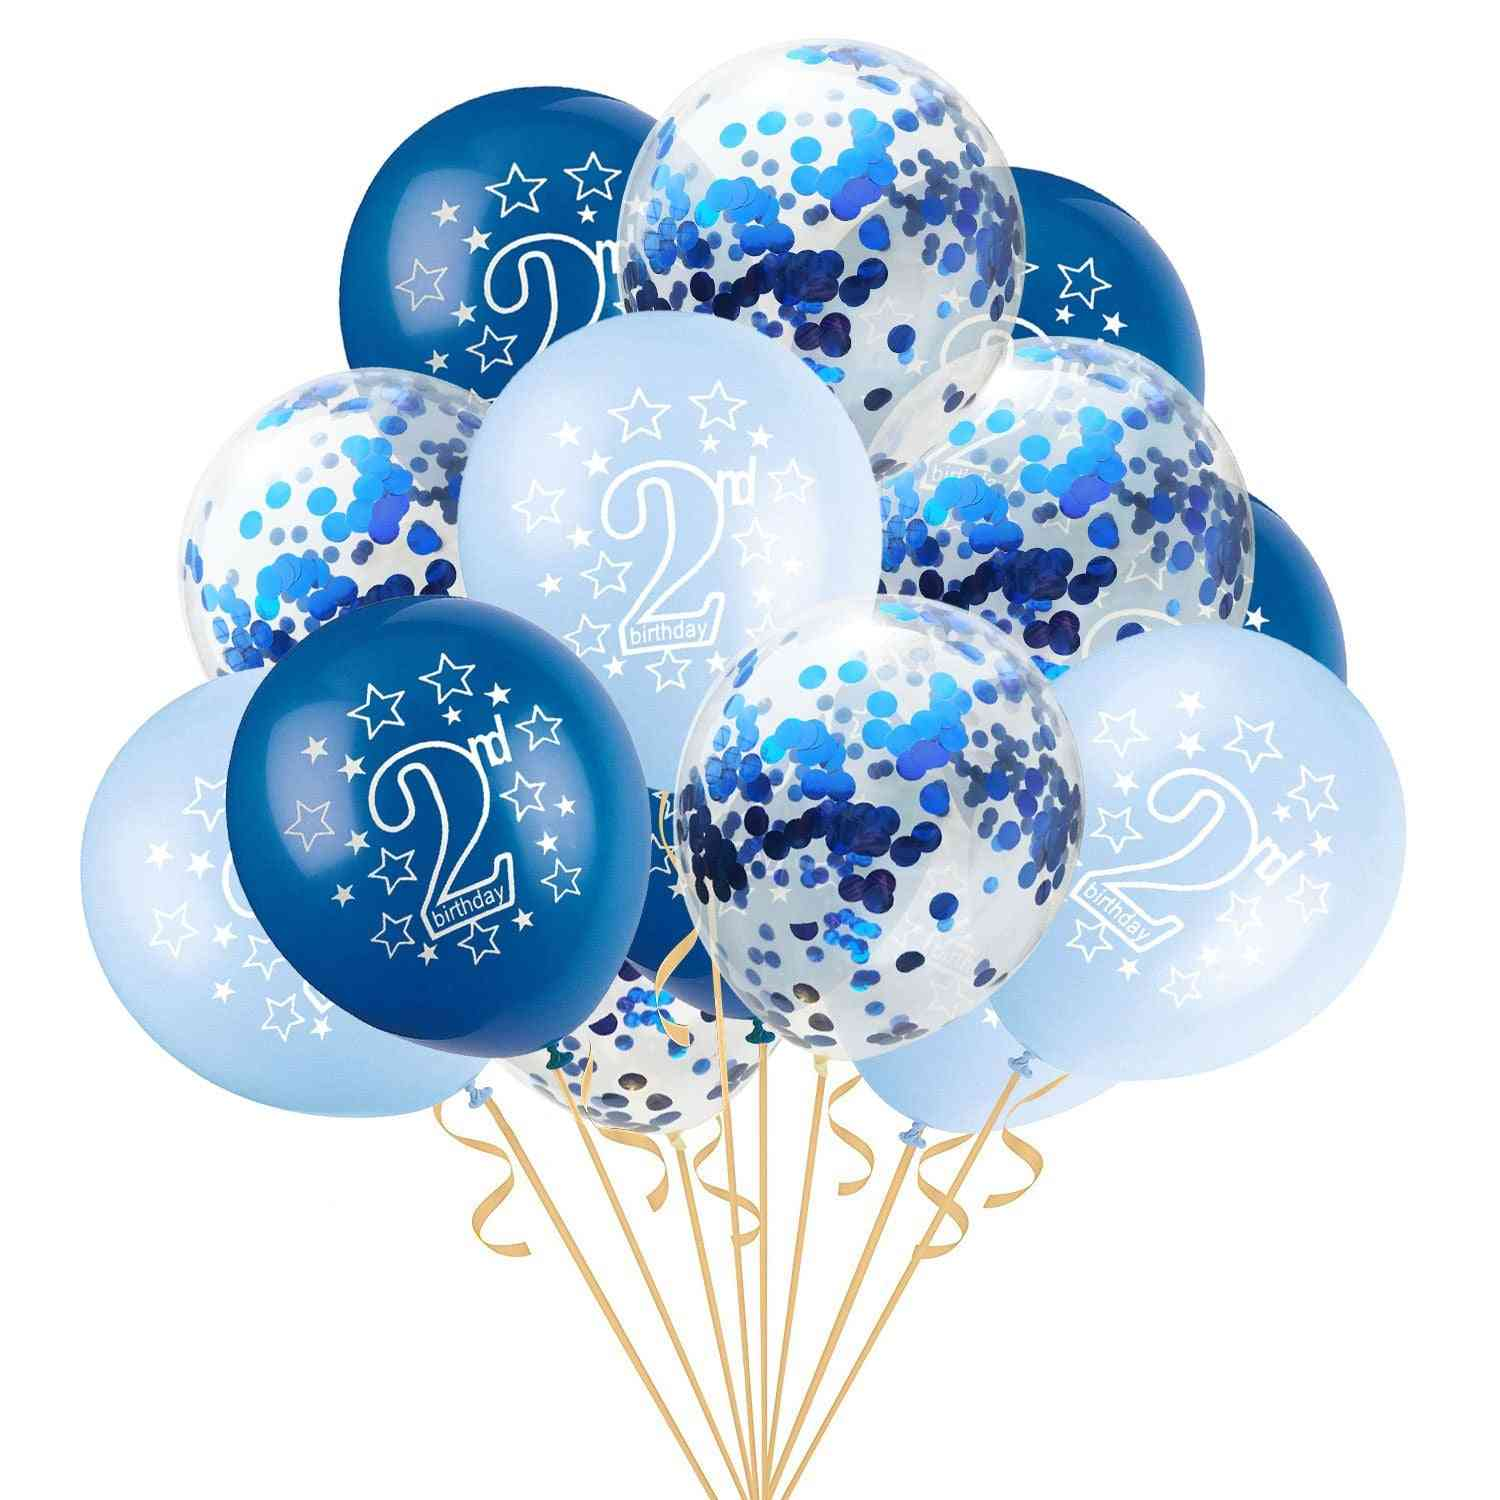 2nd-happy Birthday-latex Party Balloons For Kids